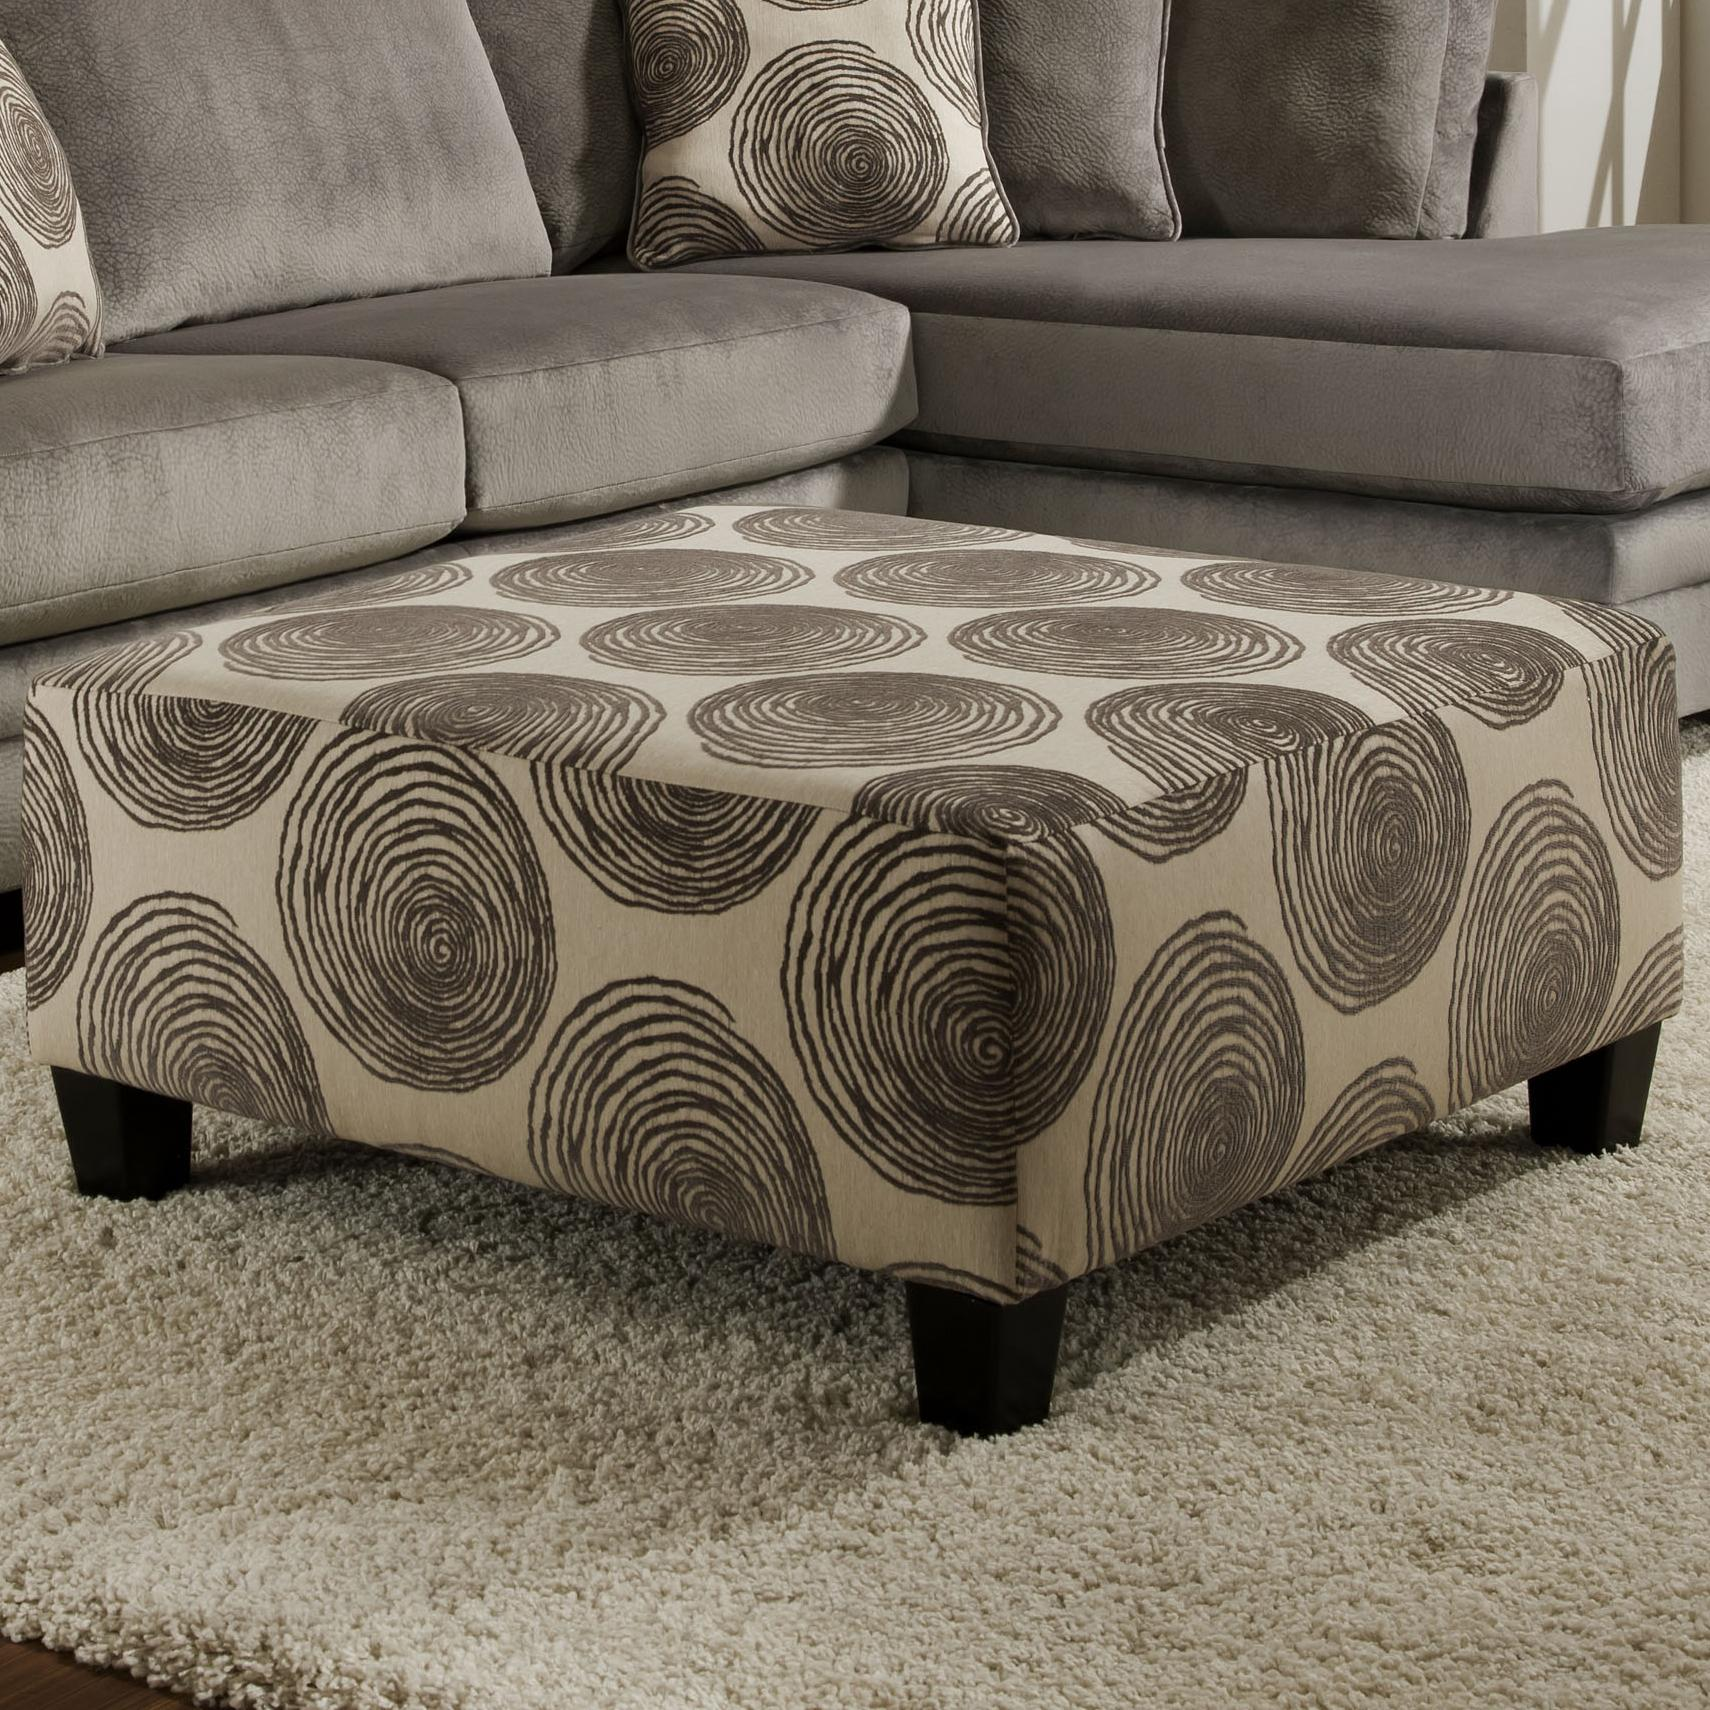 Albany 8642 Ottoman - Item Number: 8642-32-GENS-89595